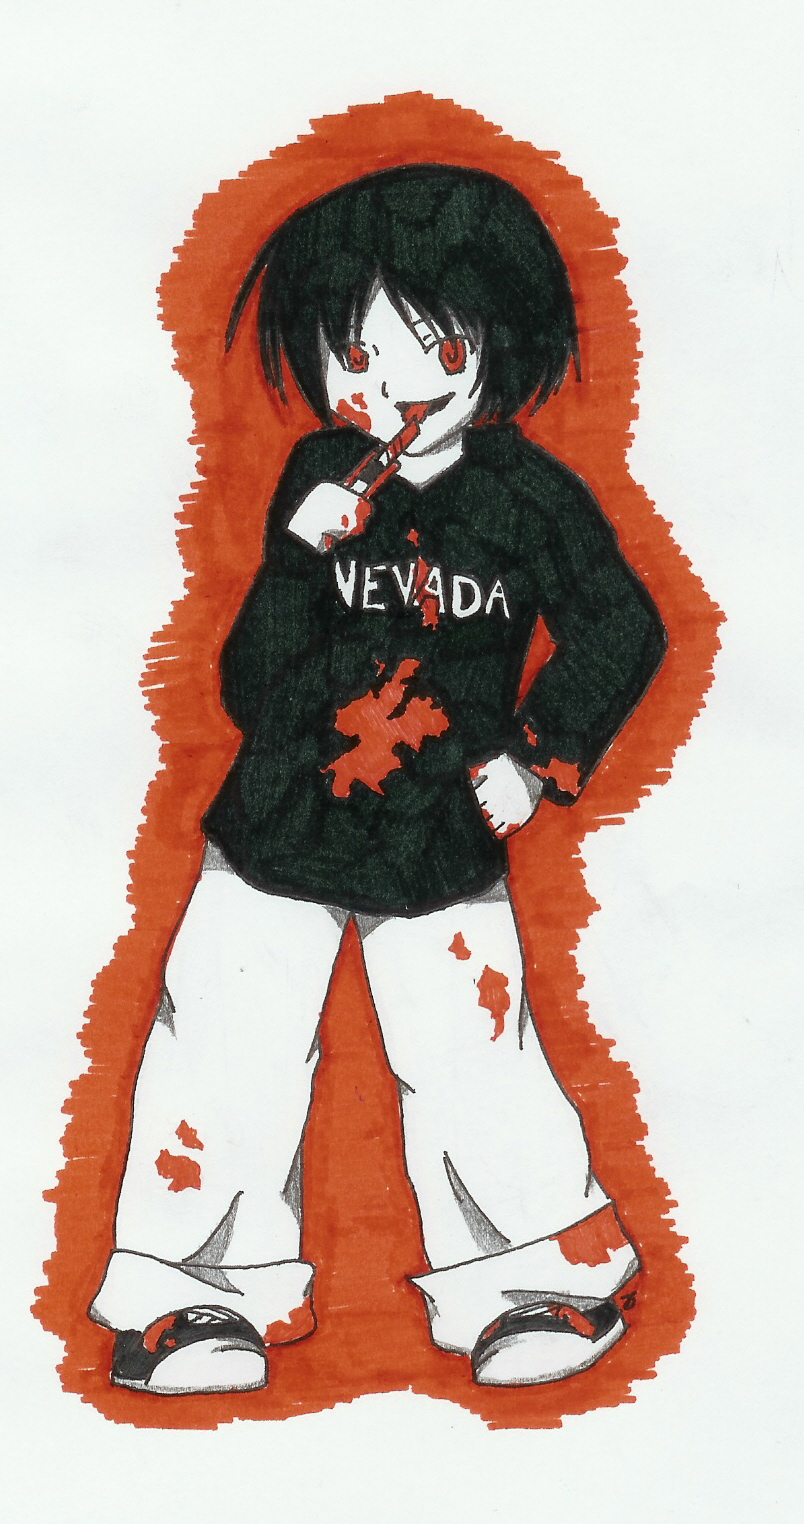 Nevada Tan By Pucca Tan On Deviantart